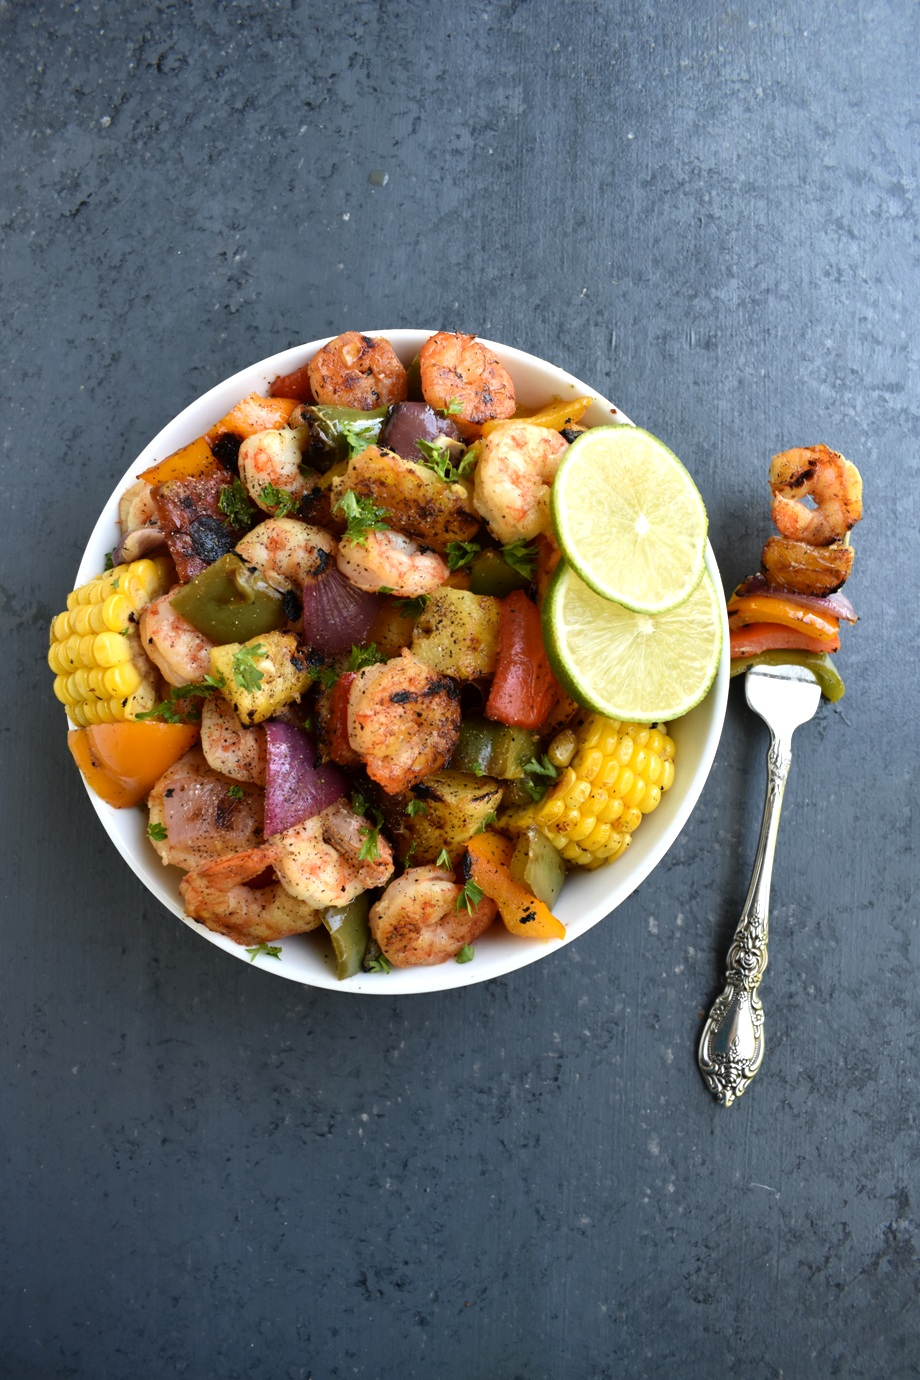 Healthy Shrimp and Vegetables